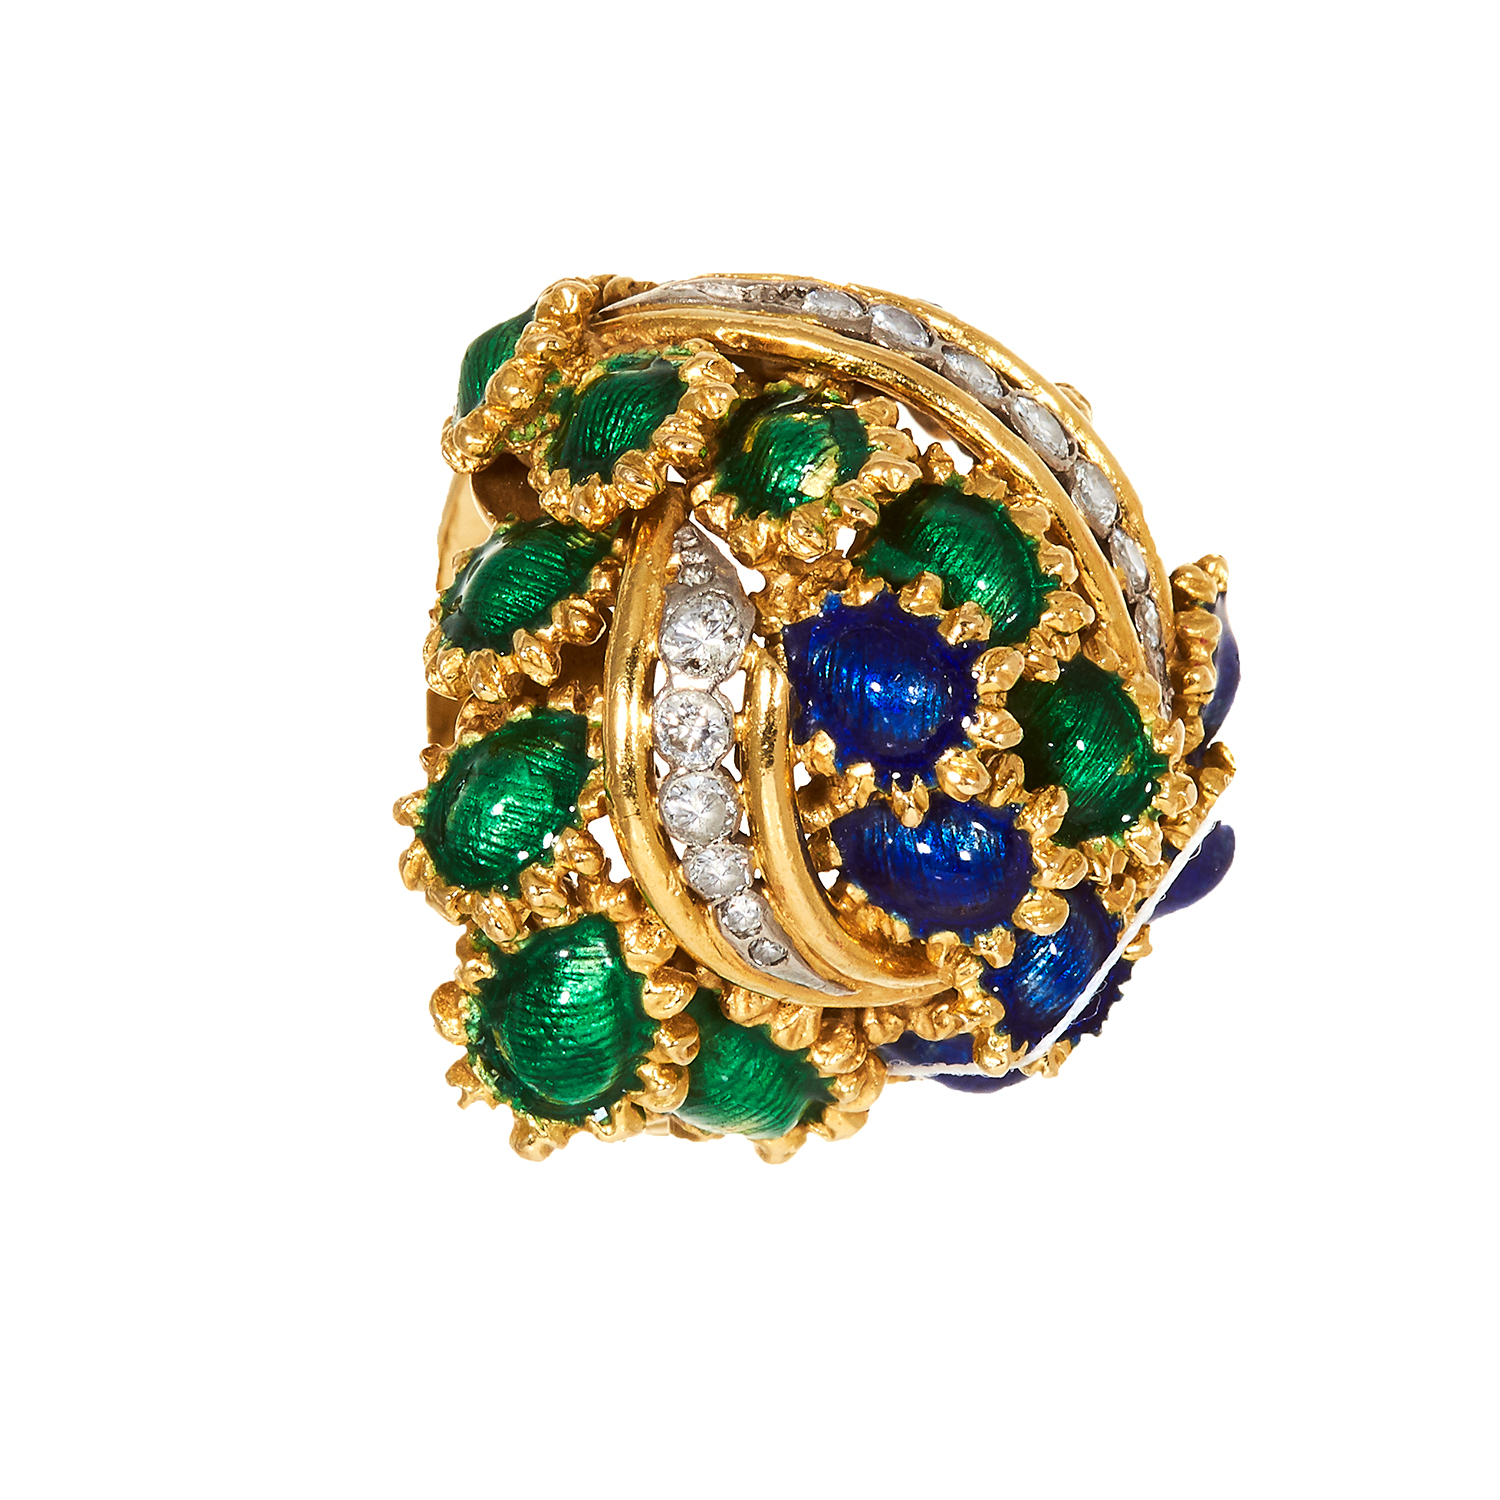 A DIAMOND AND ENAMEL BOMBE RING, KUTCHINSKY, CIRCA 1969 in 18ct yellow gold, jewelled with curved